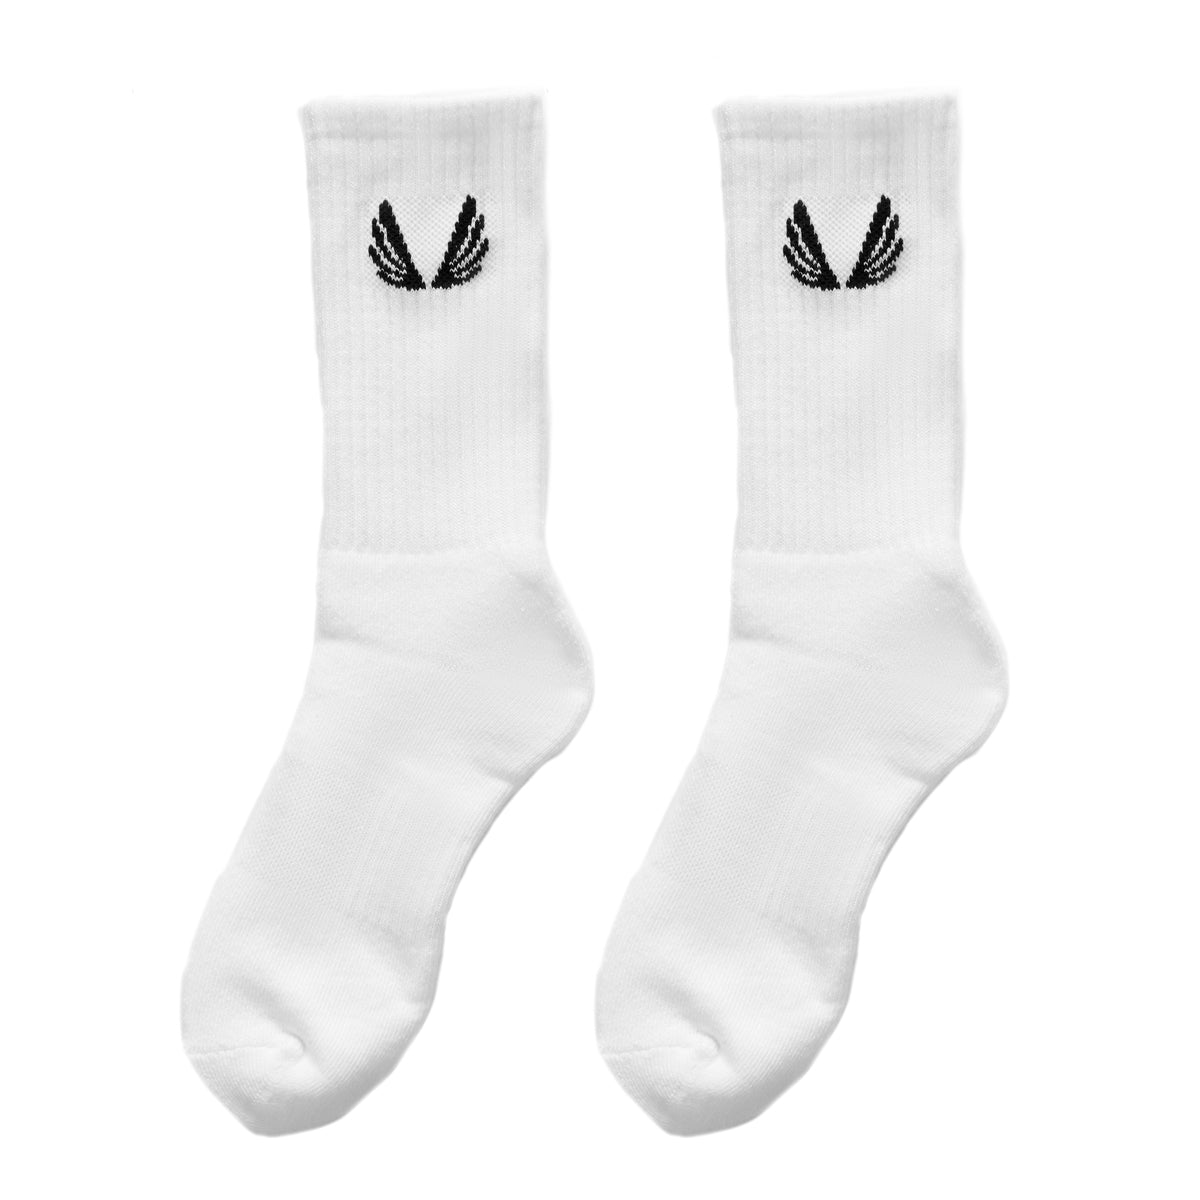 Essential Crew Socks (3 Pair) - White